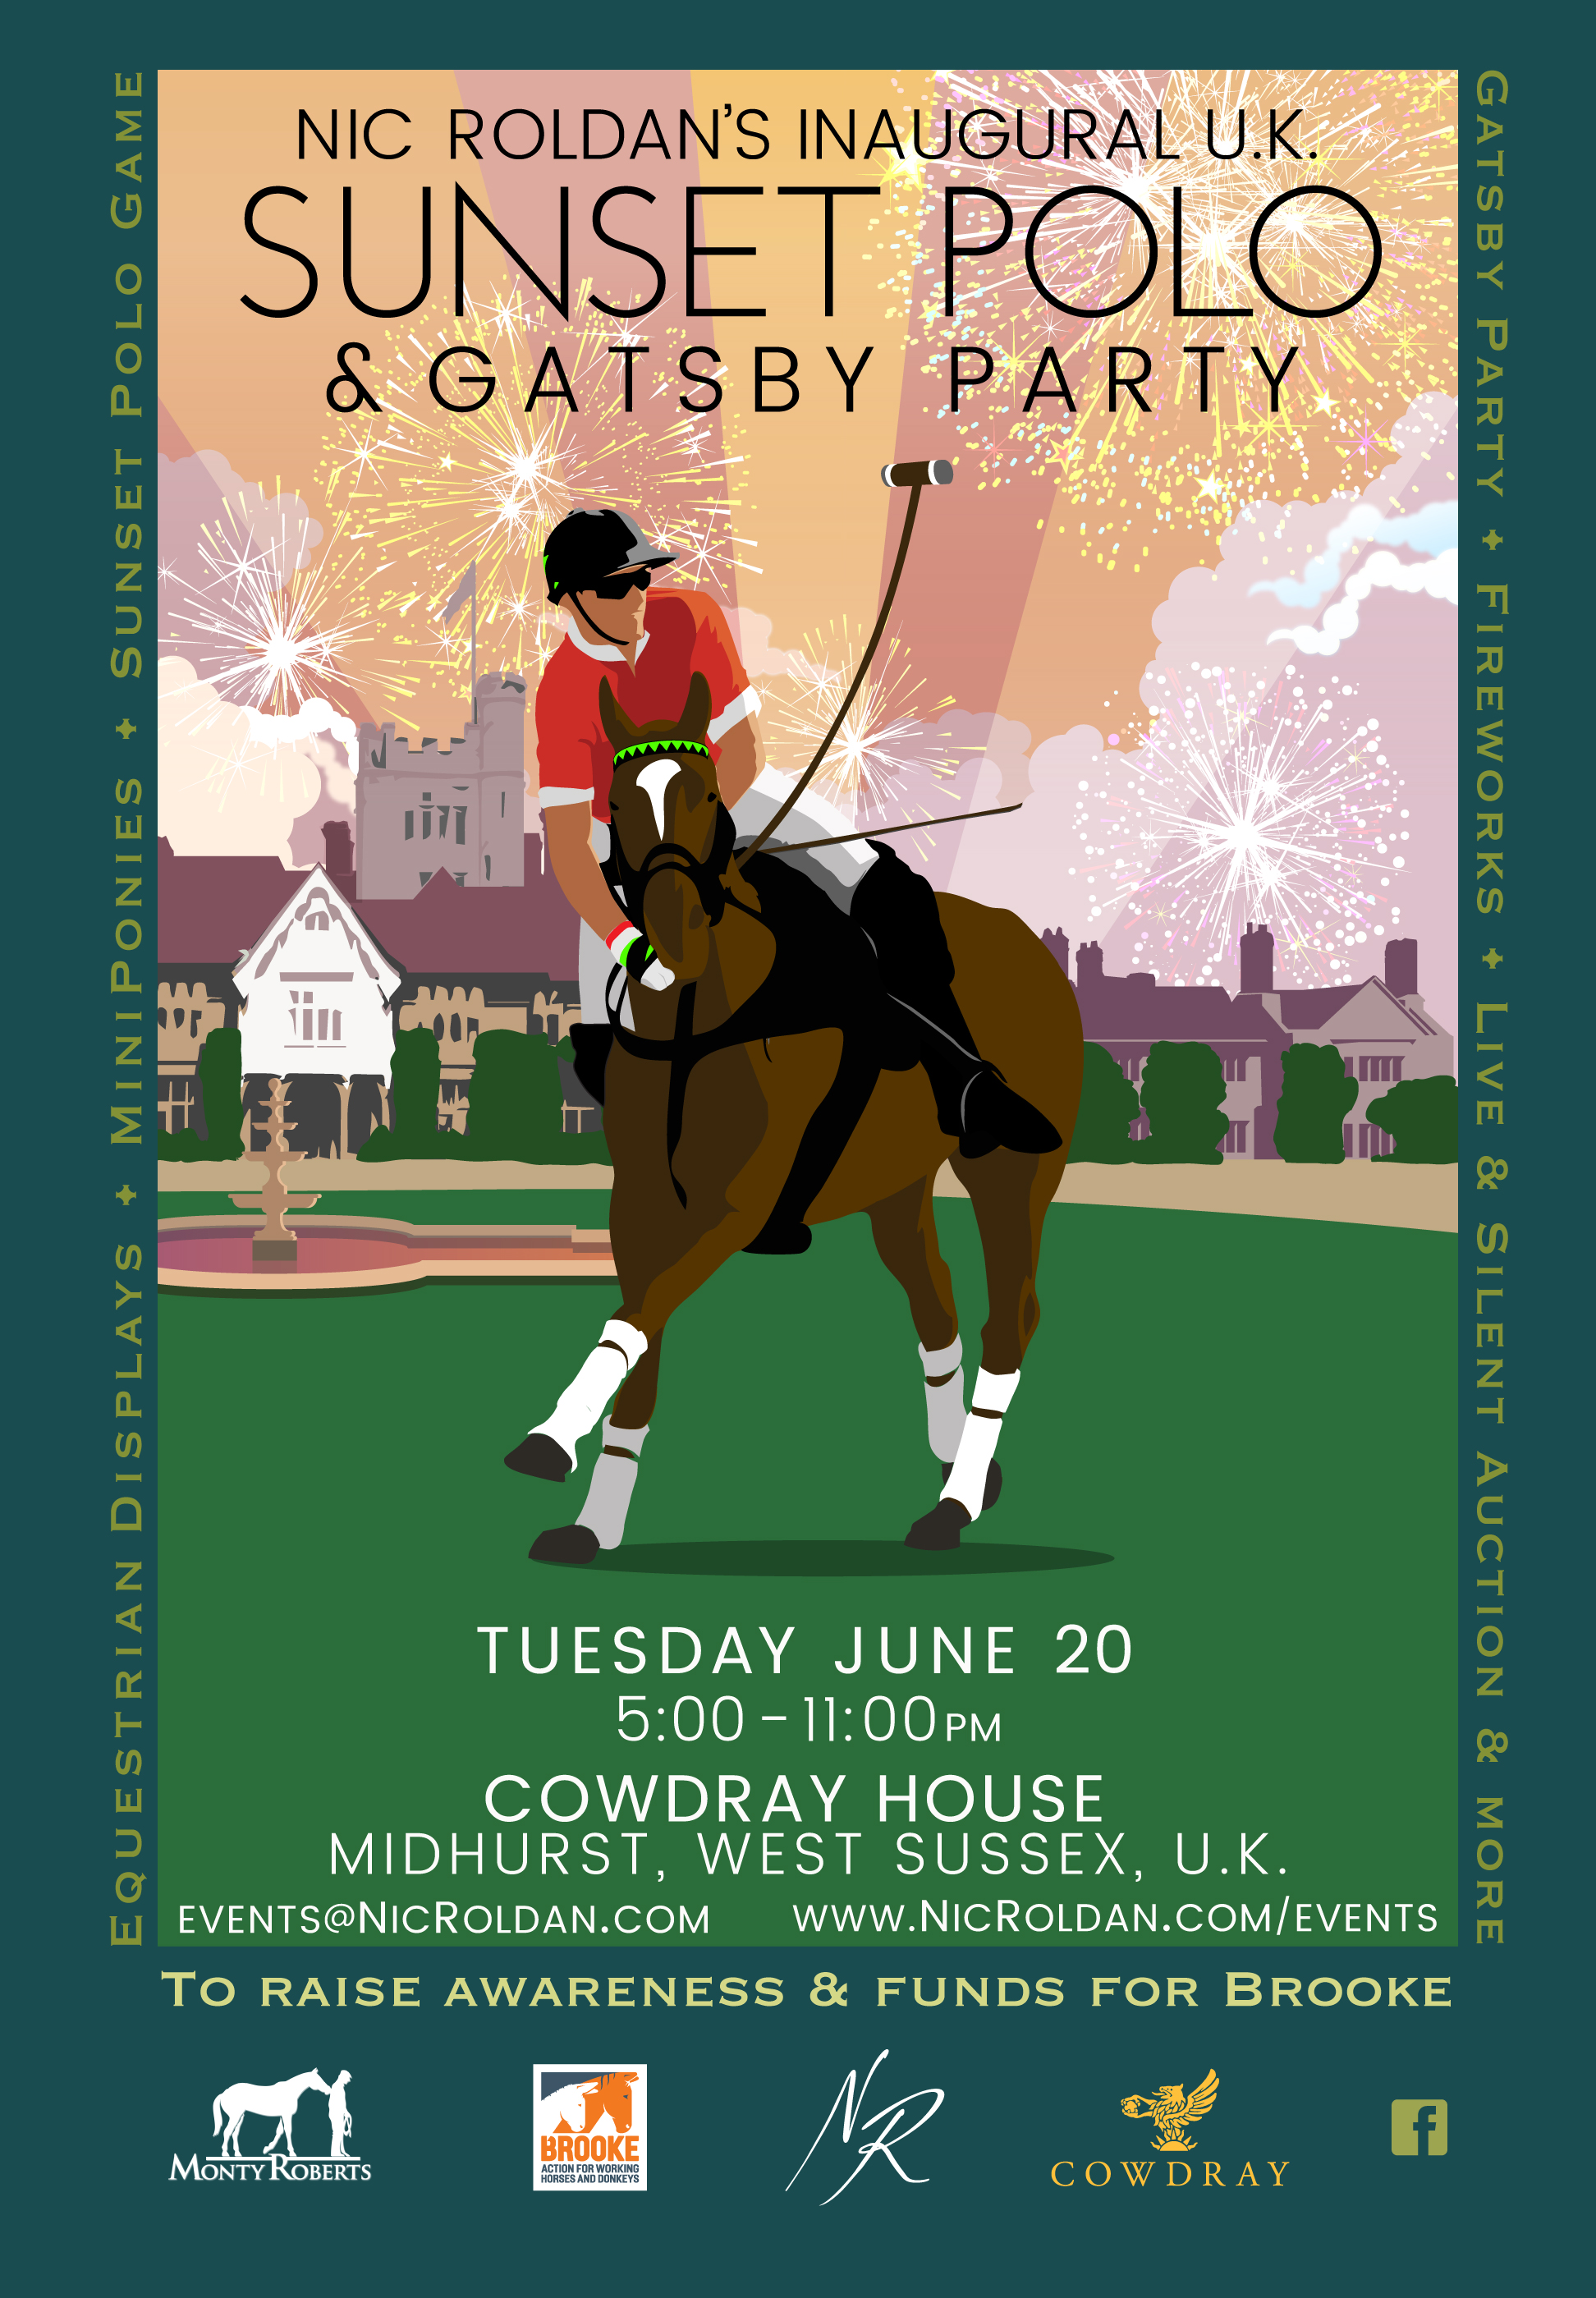 Nic Roldan's Inaugural UK Sunset Polo at Cowdray